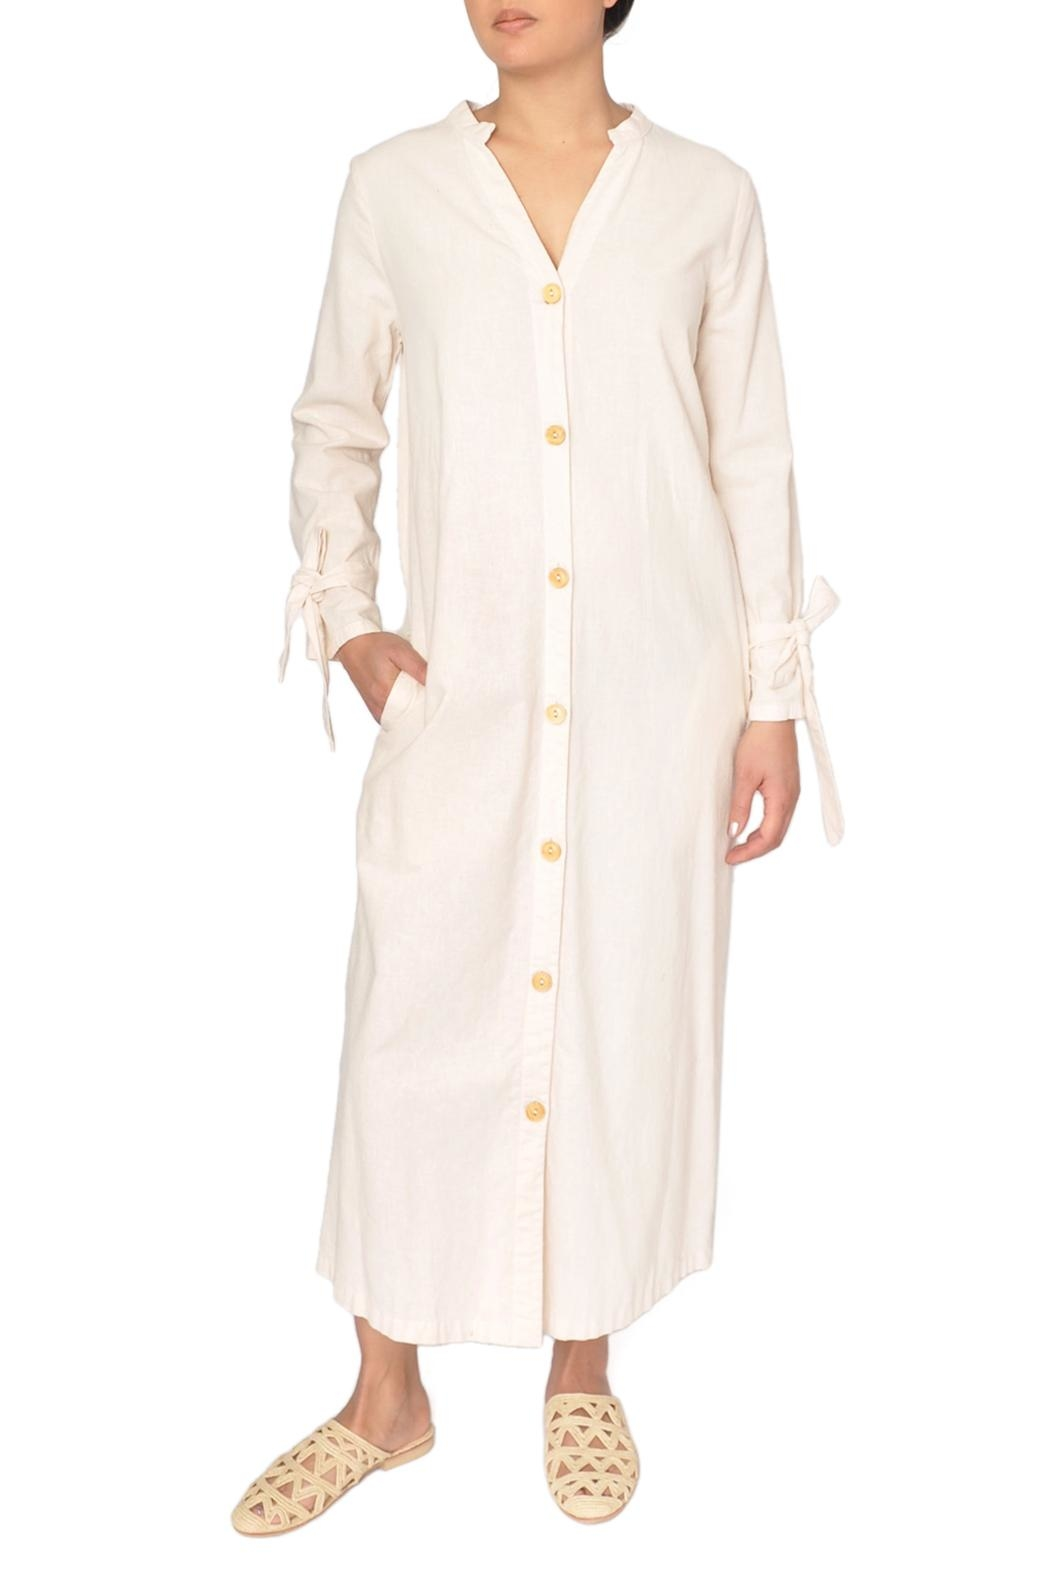 LACAUSA Ivory Tunic Dress - Main Image